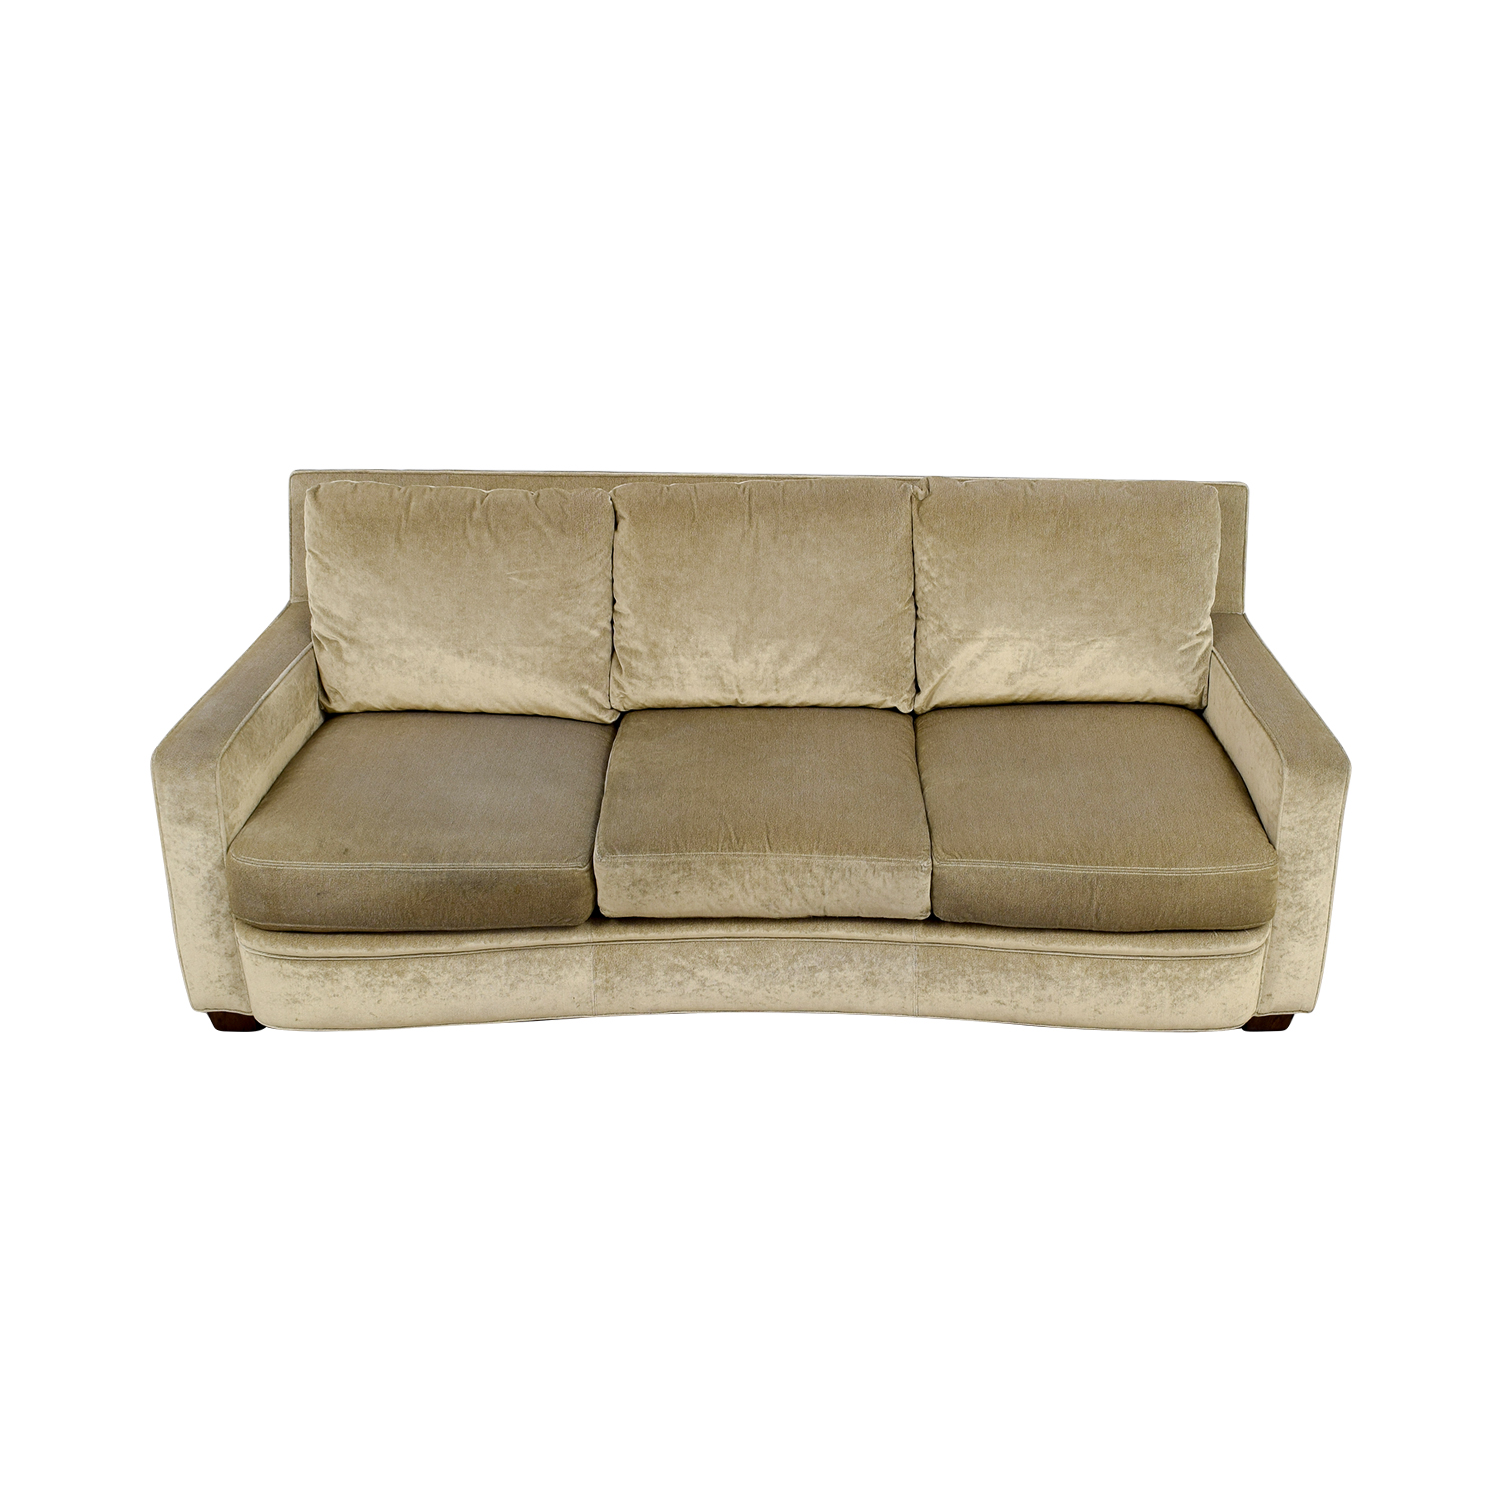 Kravit Furniture Beige Three-Cushion Curved Sofa / Classic Sofas